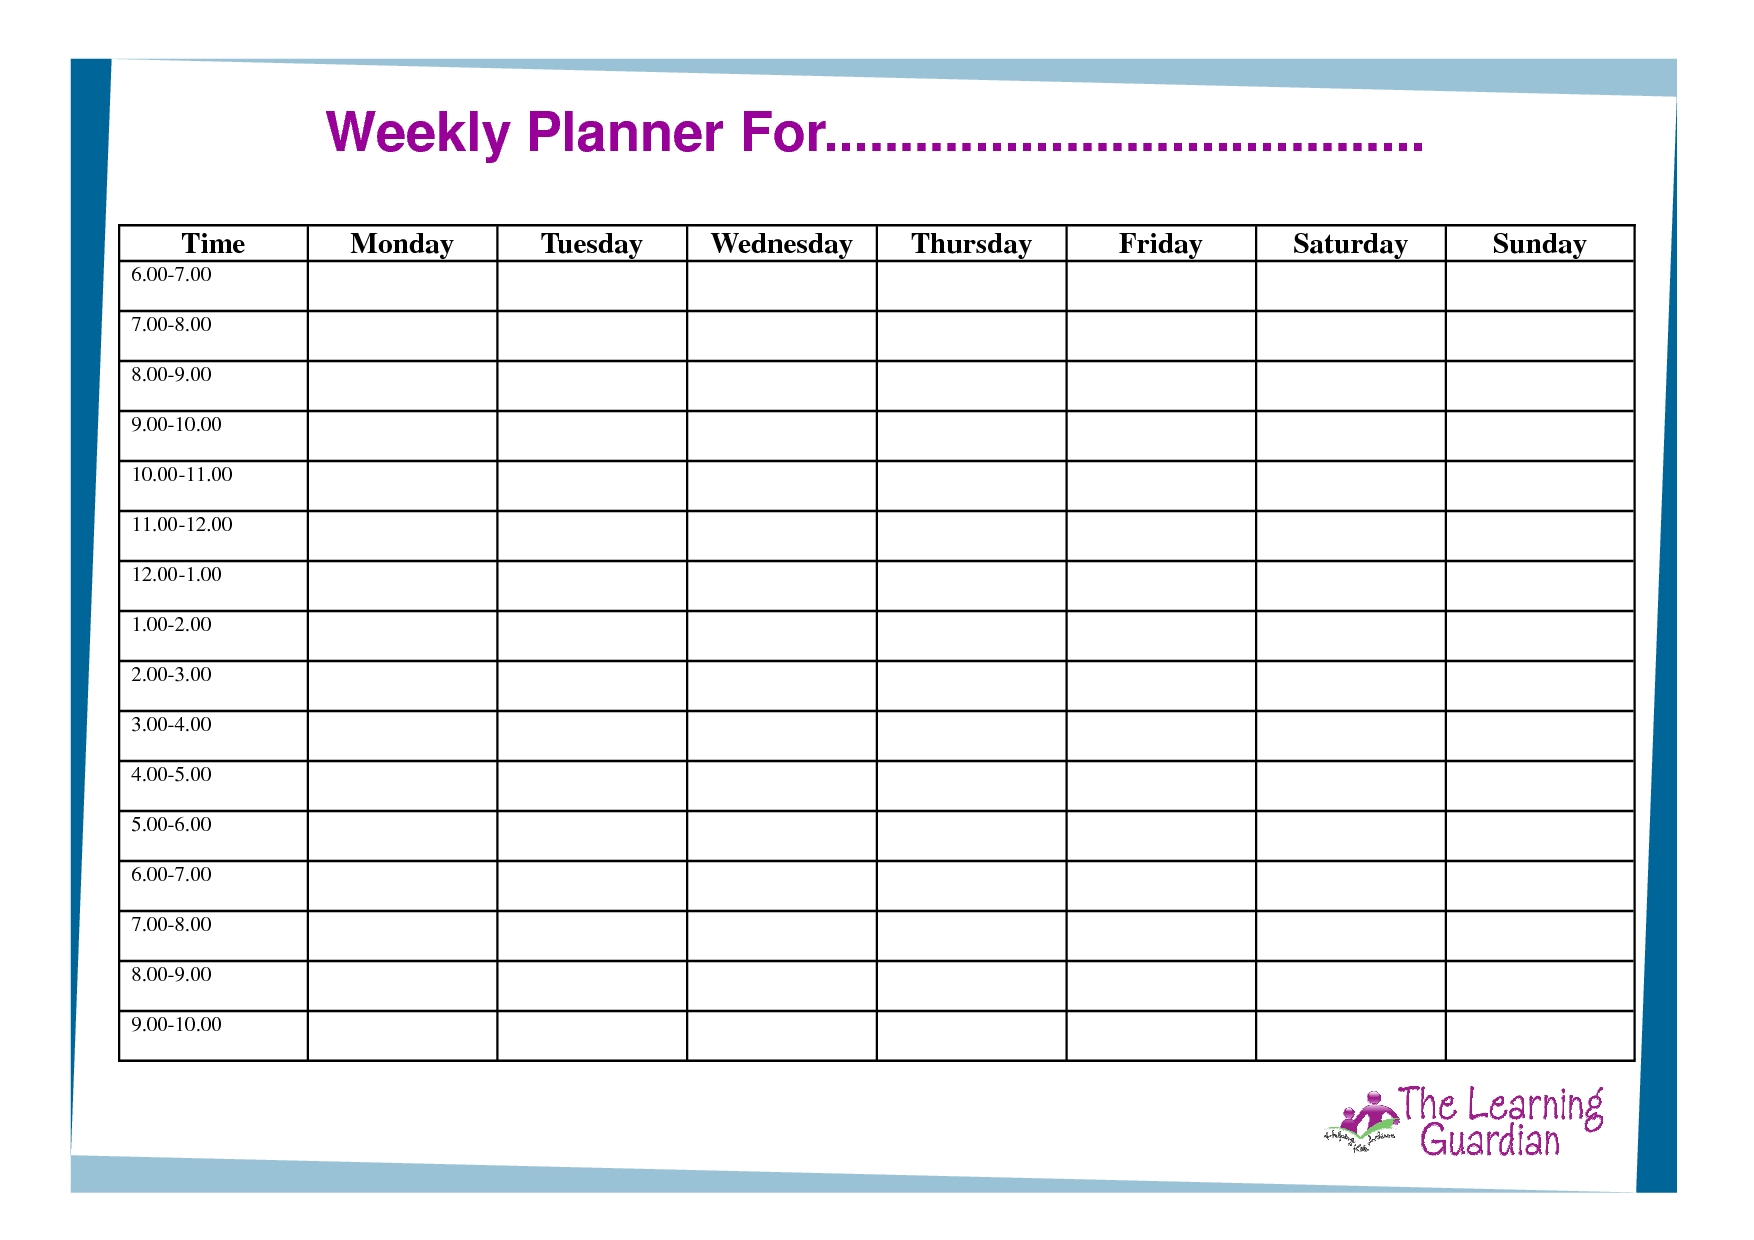 Free Printable Weekly Calendar Templates | Weekly Planner For Time pertaining to Printable Weekly Schedule With Hours Monday To Friday